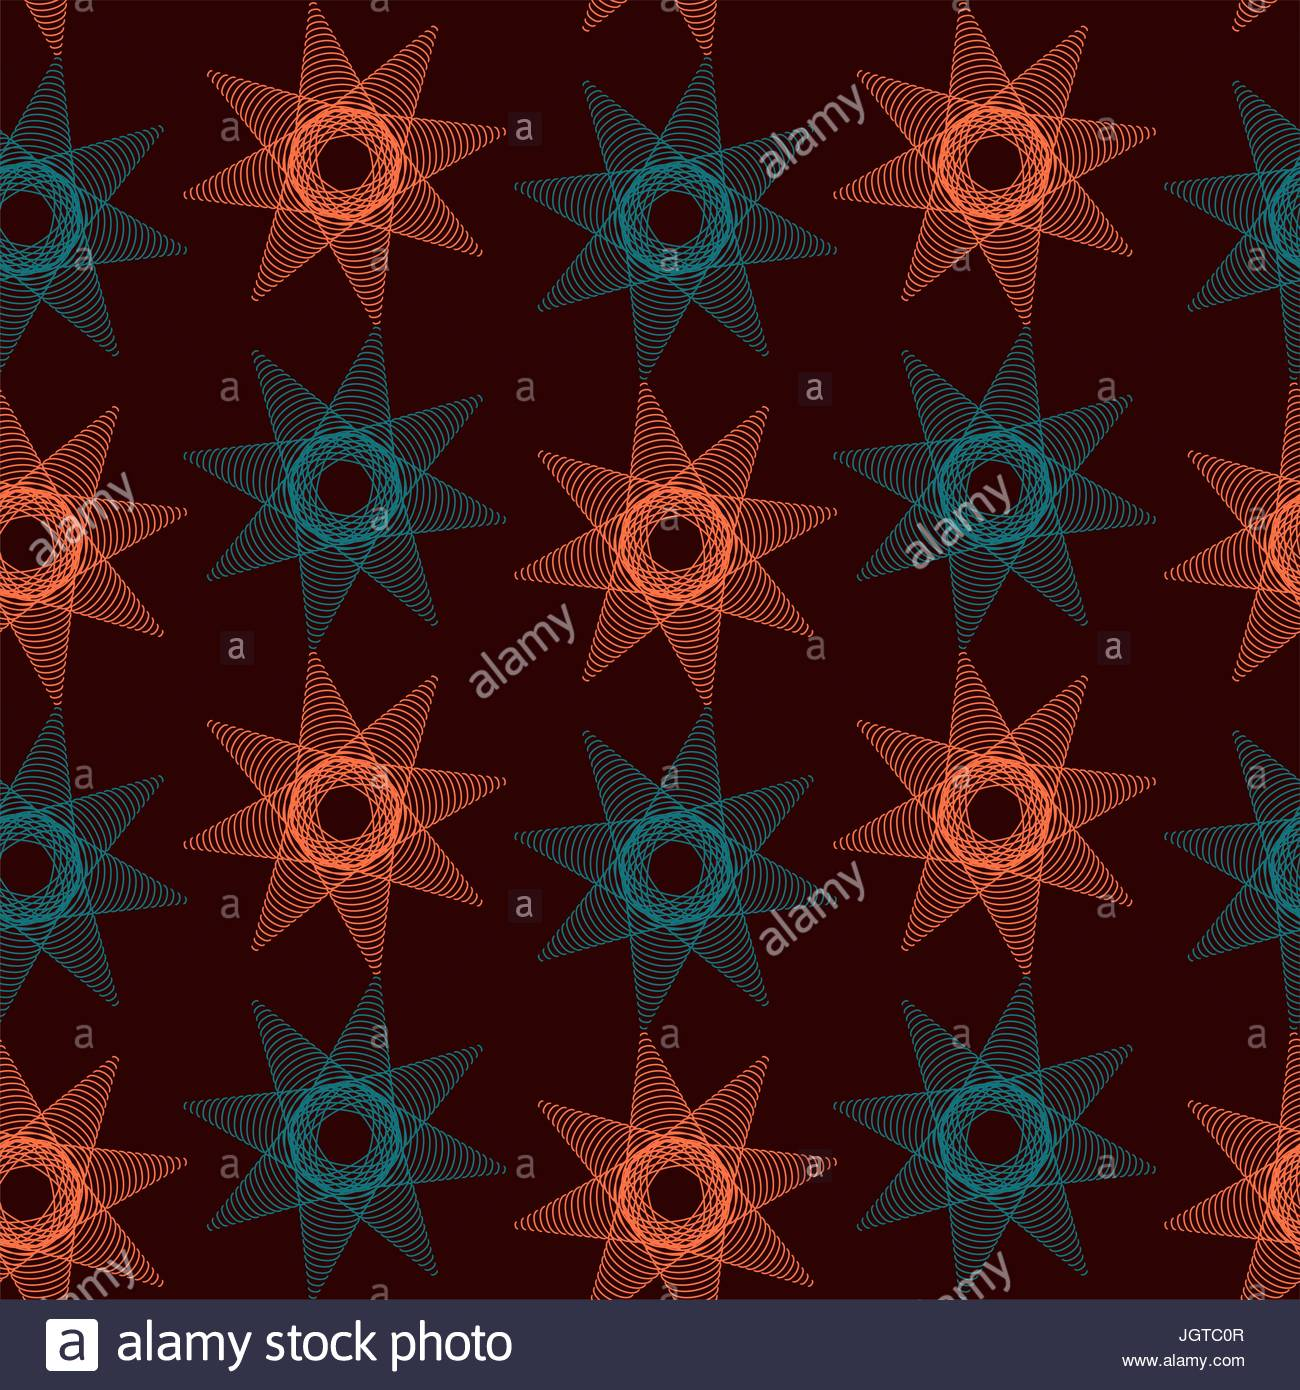 linear radiating stars seamless pattern in orange and blue shades - Stock Vector